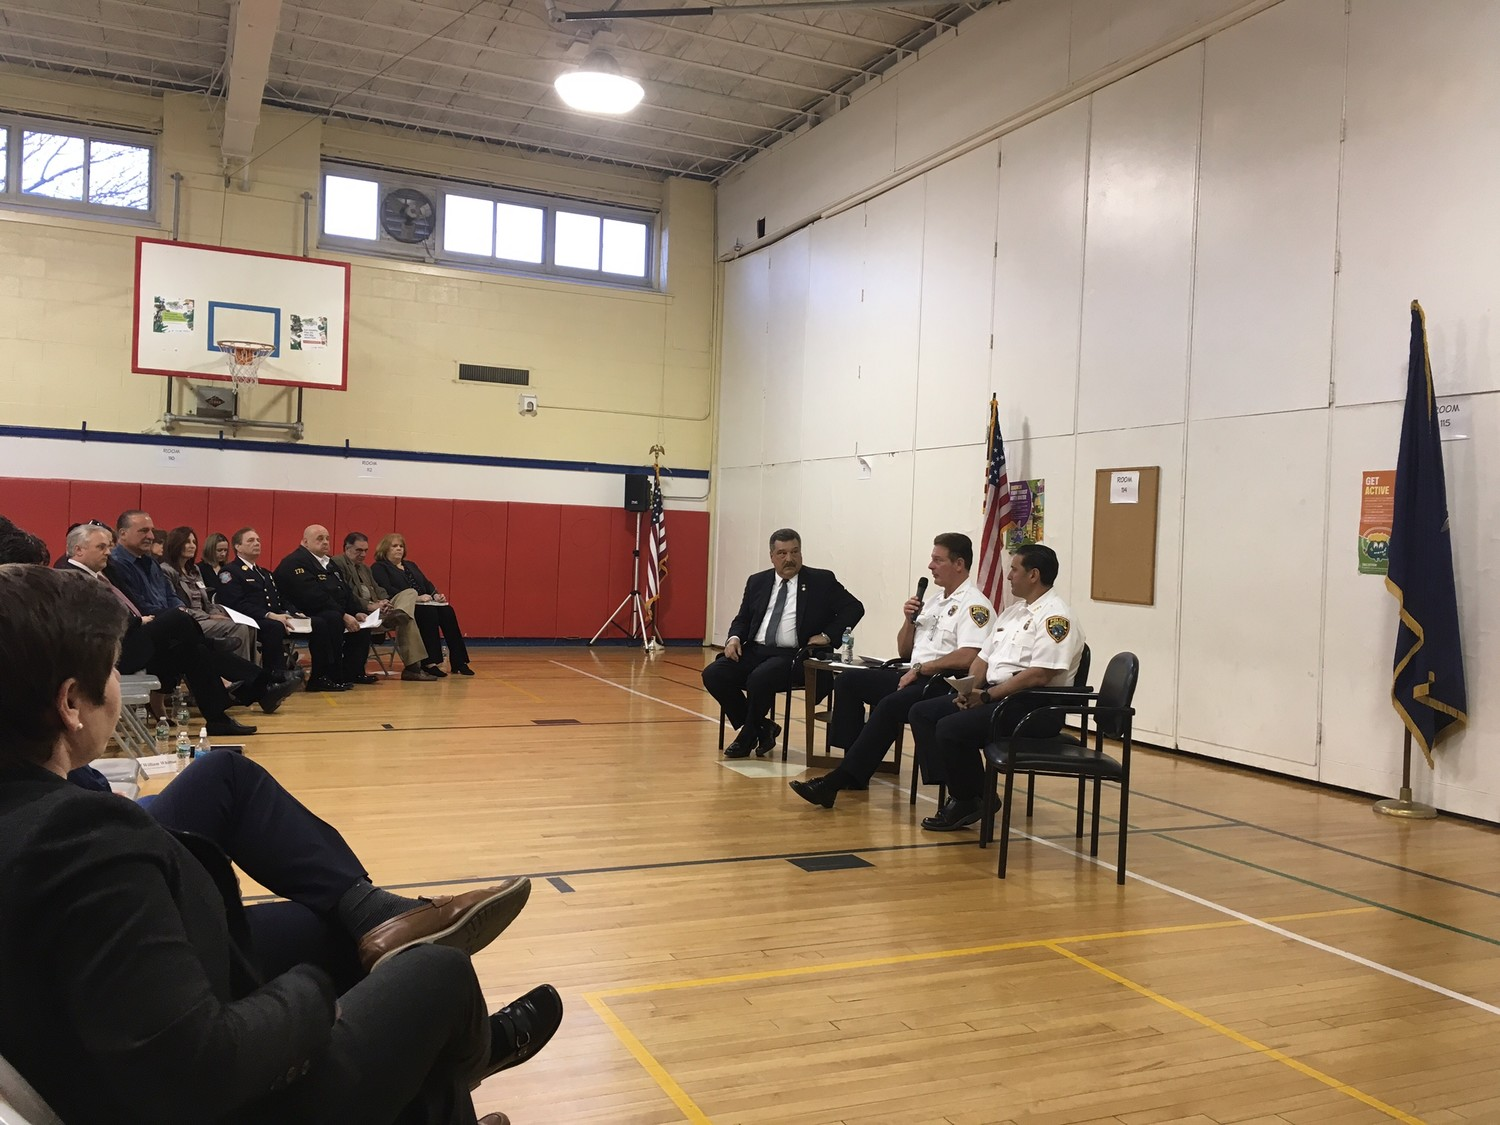 Mayor Tim Tenke, left, gave Glen Cove Police Chief William Whitton and Deputy Chief Chris Ortiz the opportunity to fill residents in on the department's anti-drug and anti-school shooter efforts.